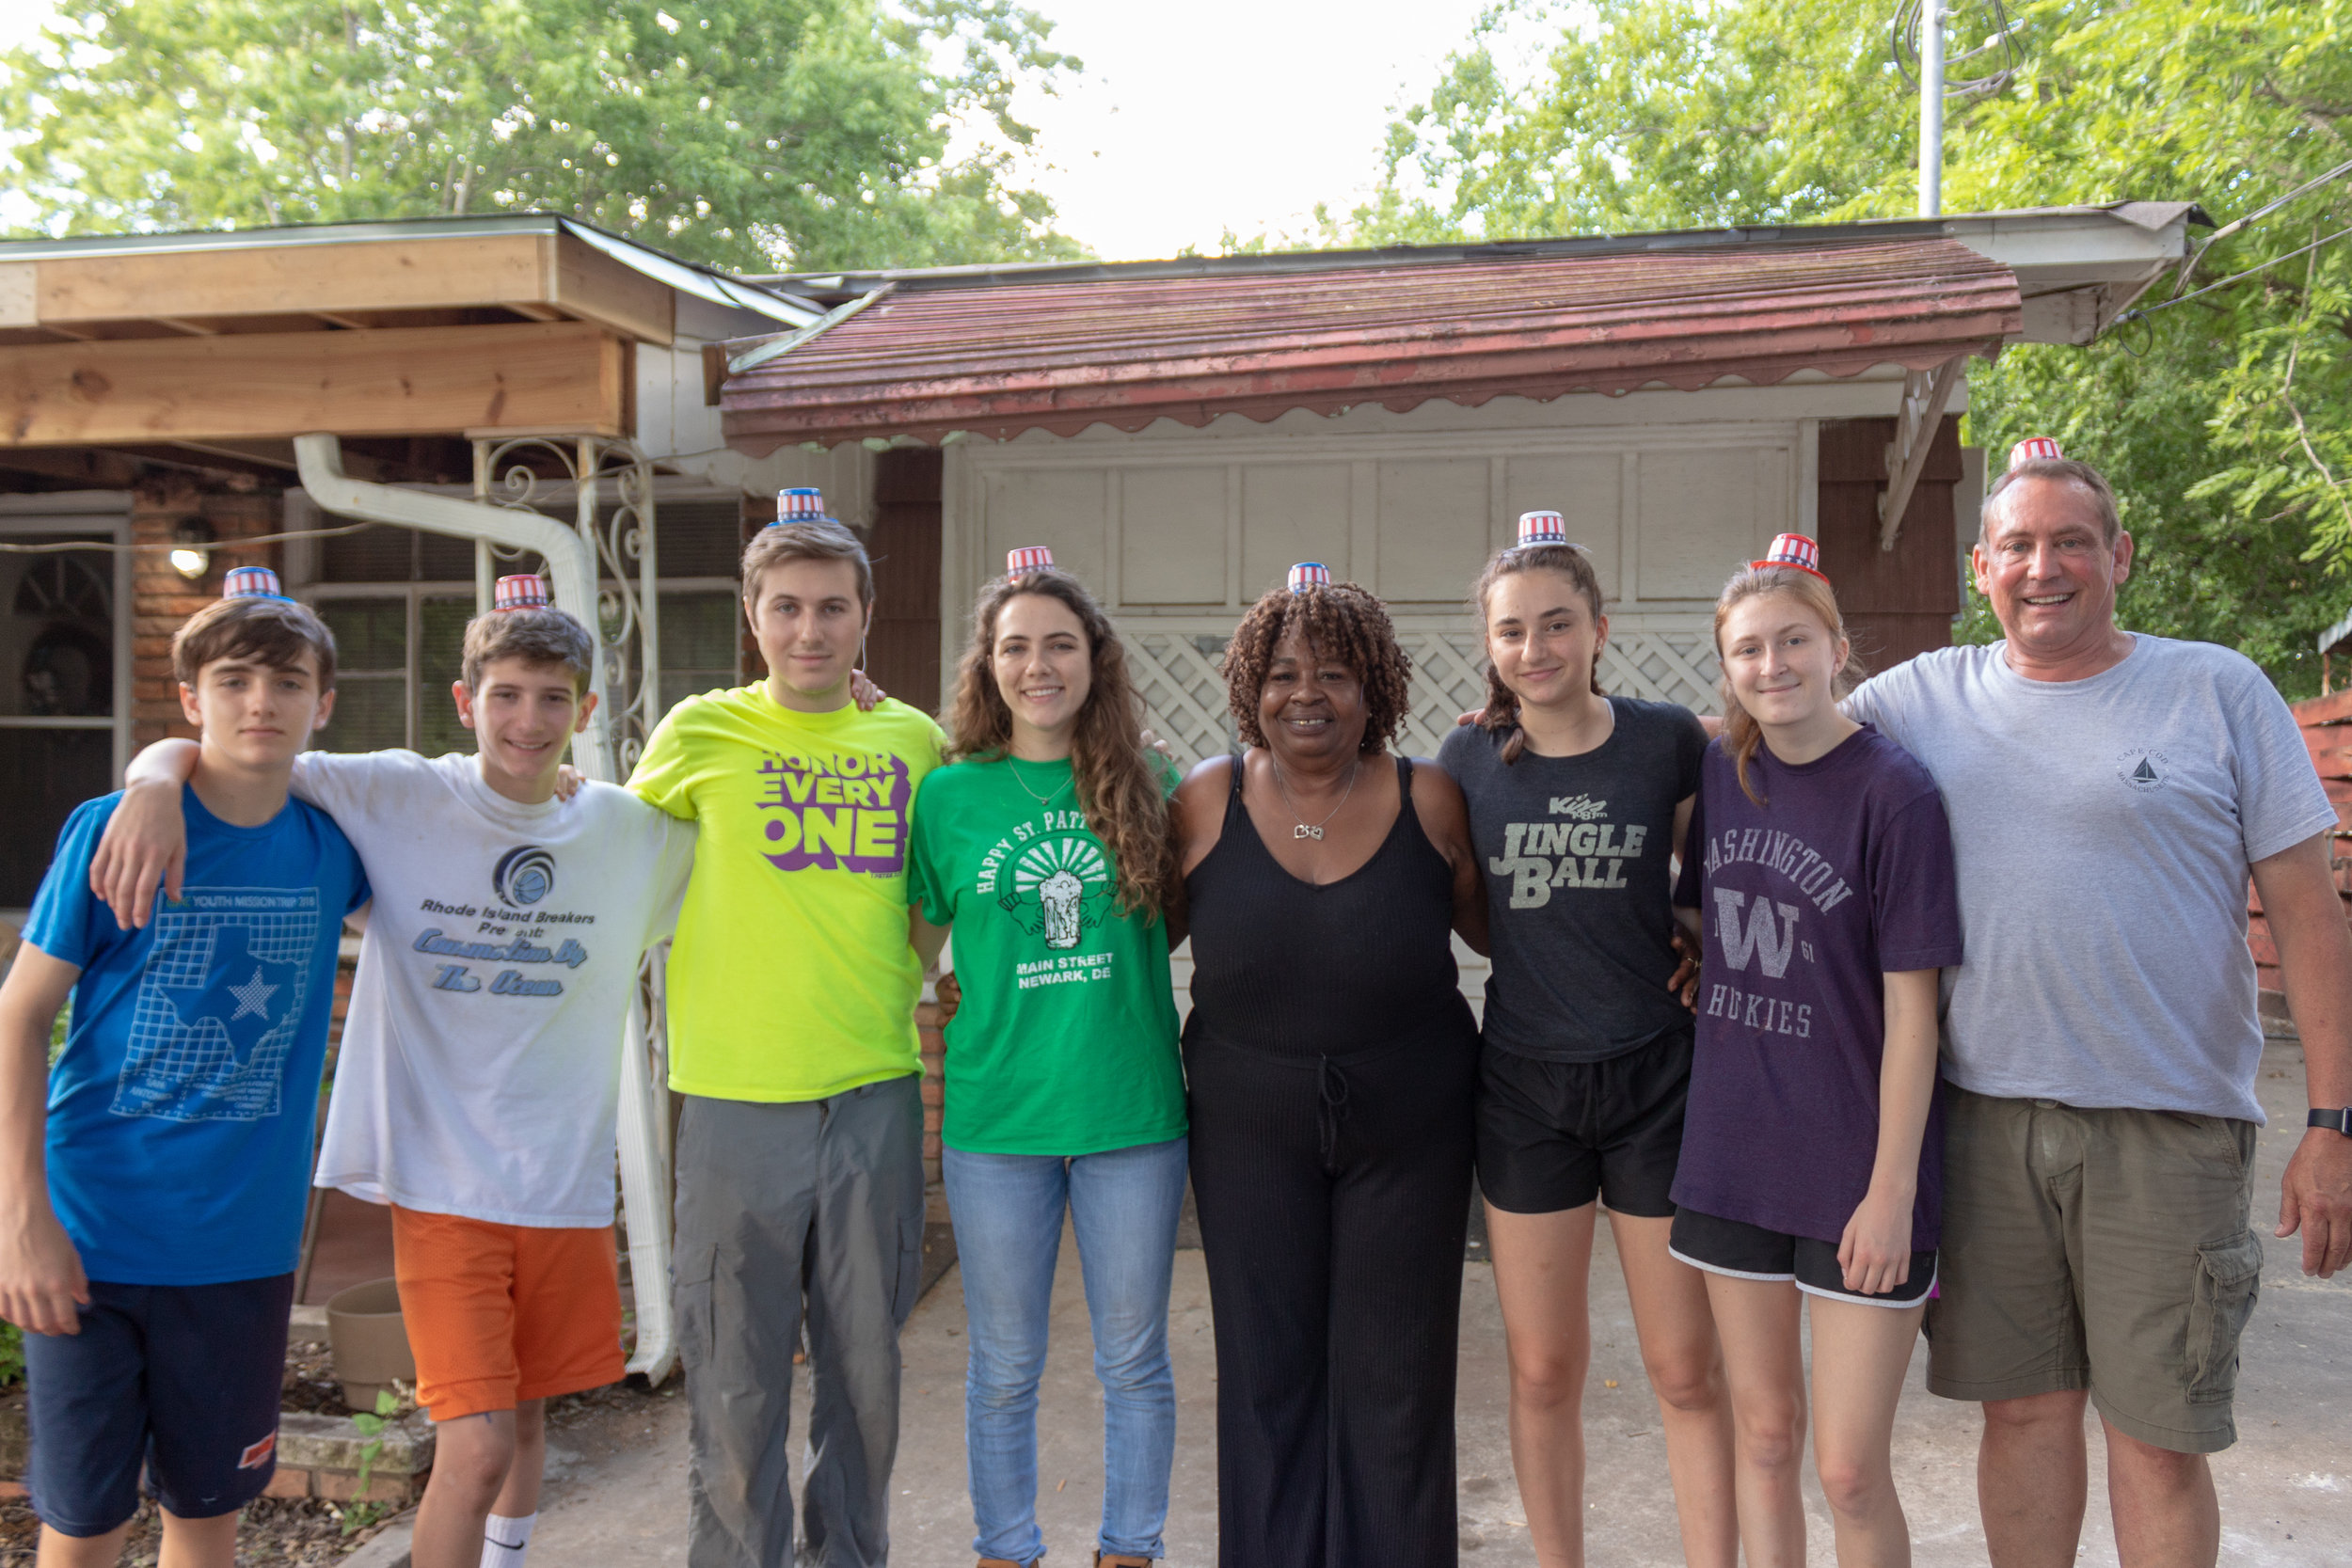 Mary and the team of volunteers working on her home.